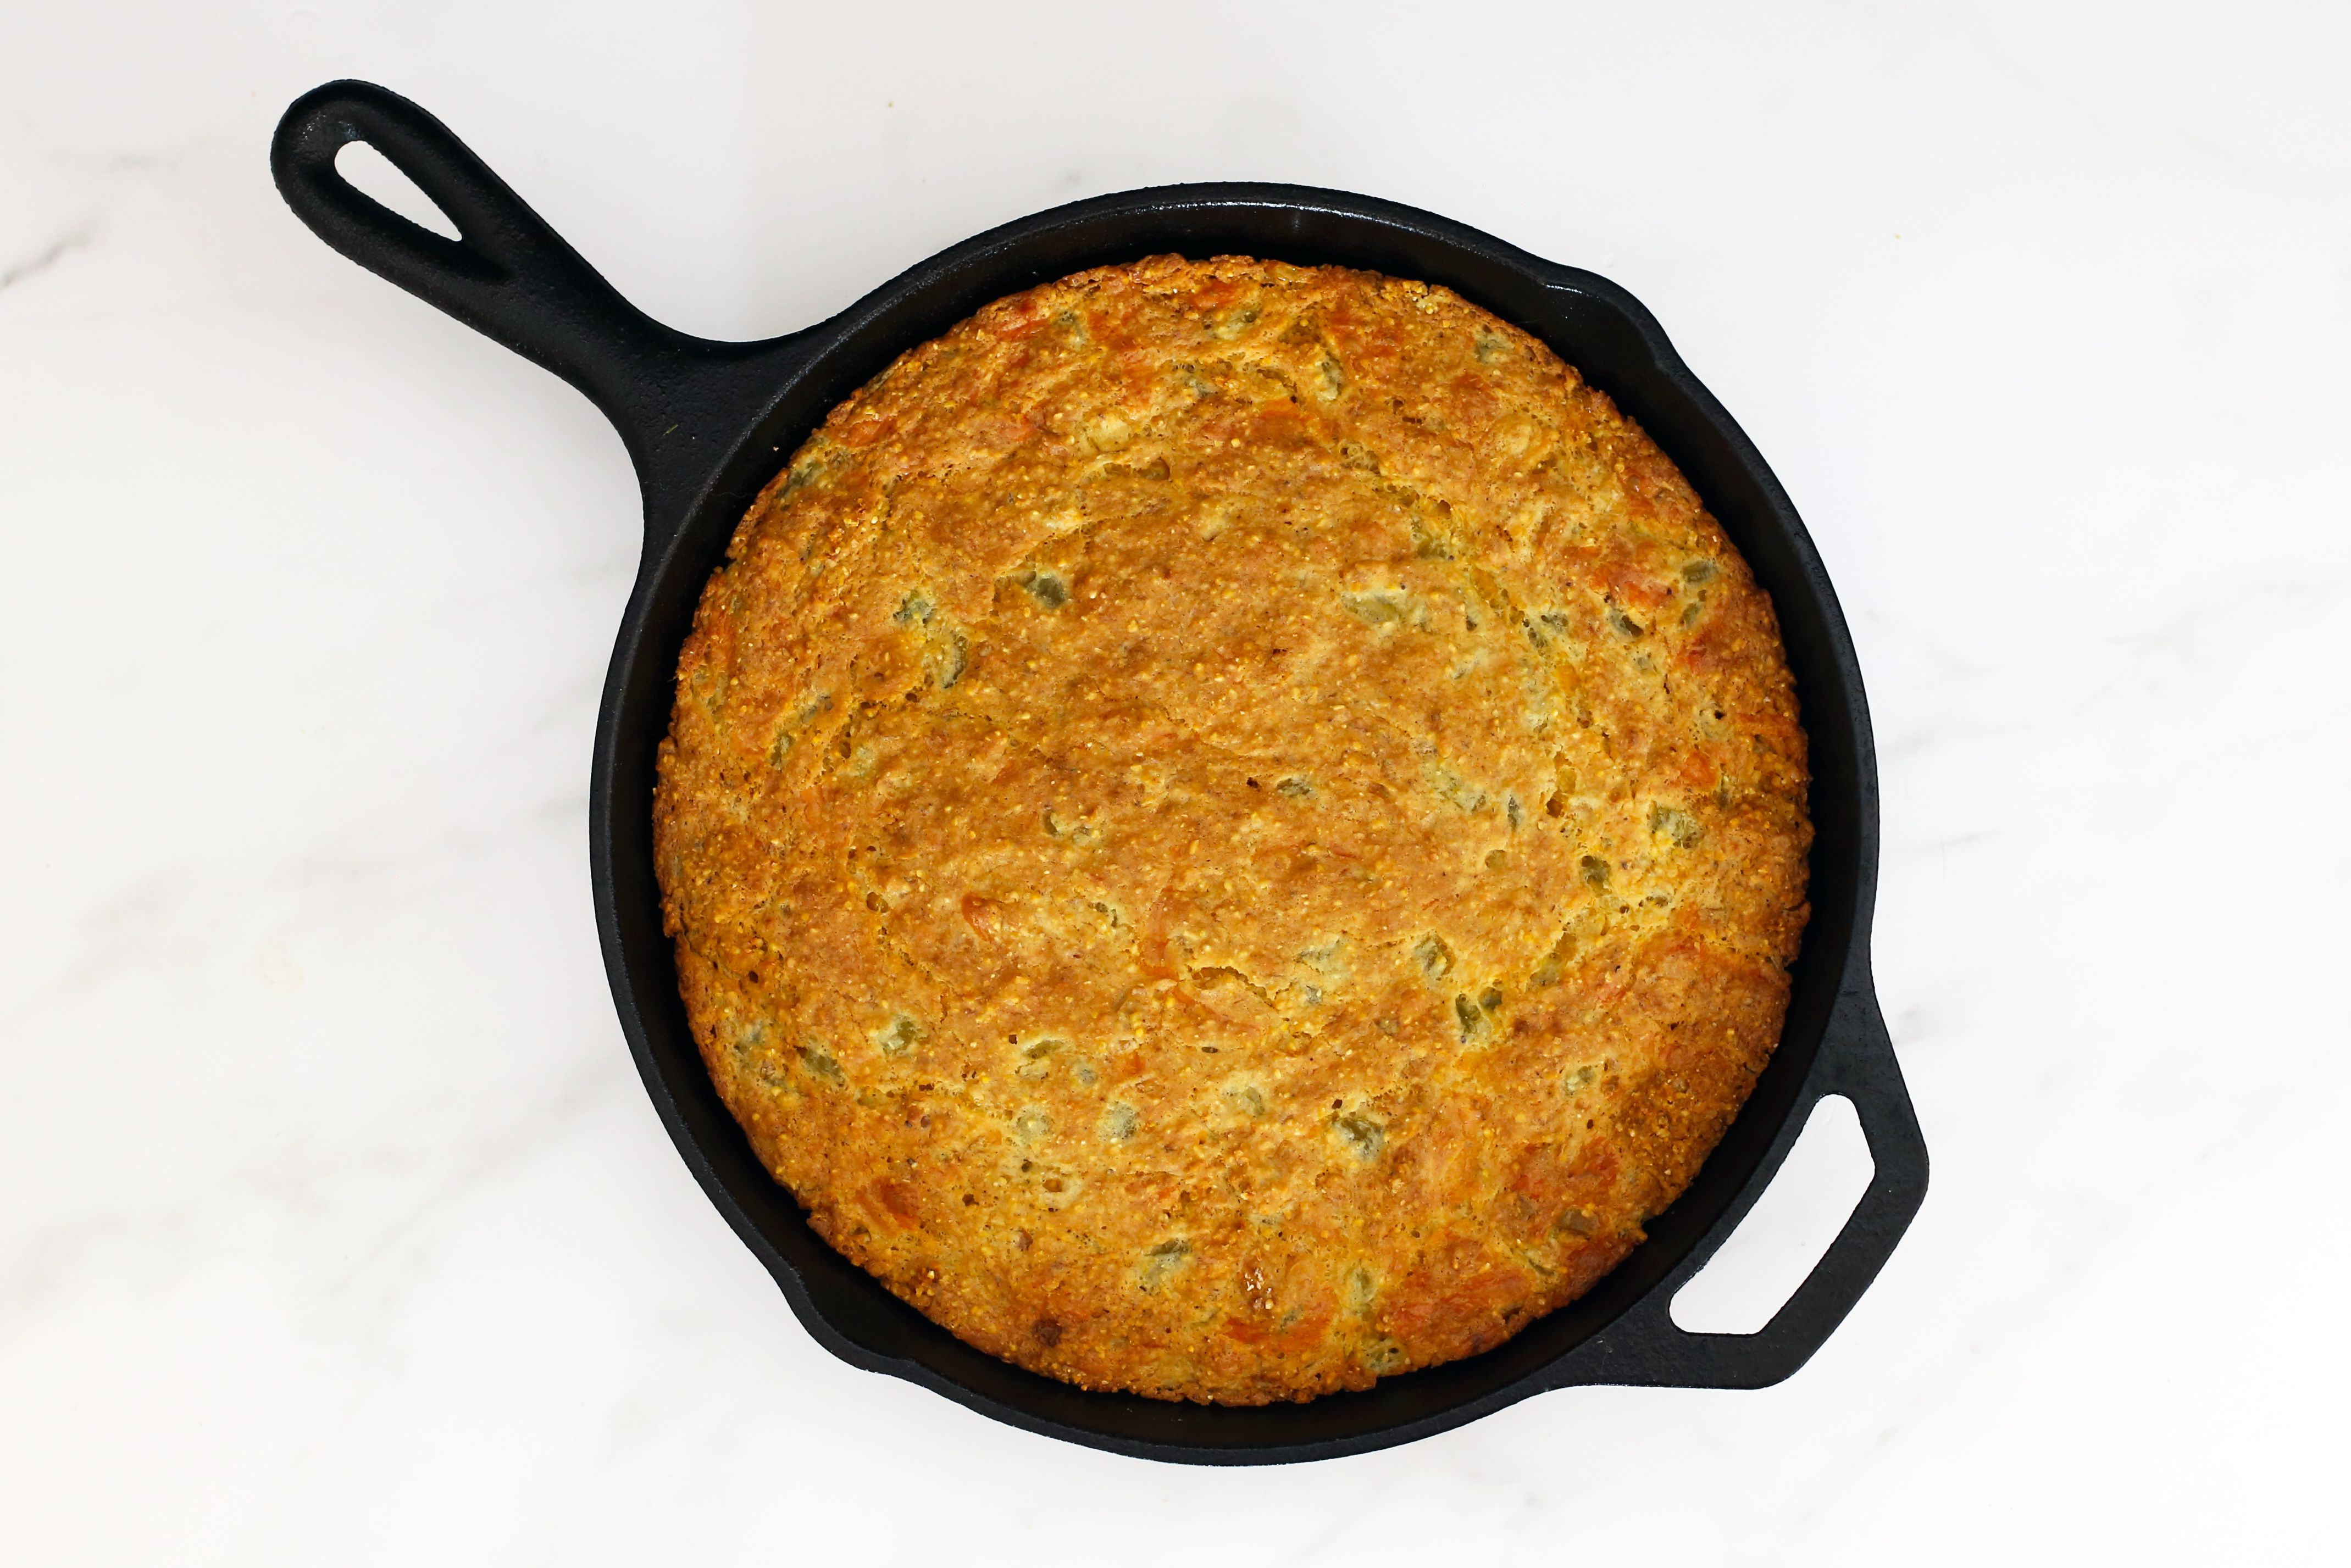 Baked Mexican cornbread in the skillet.